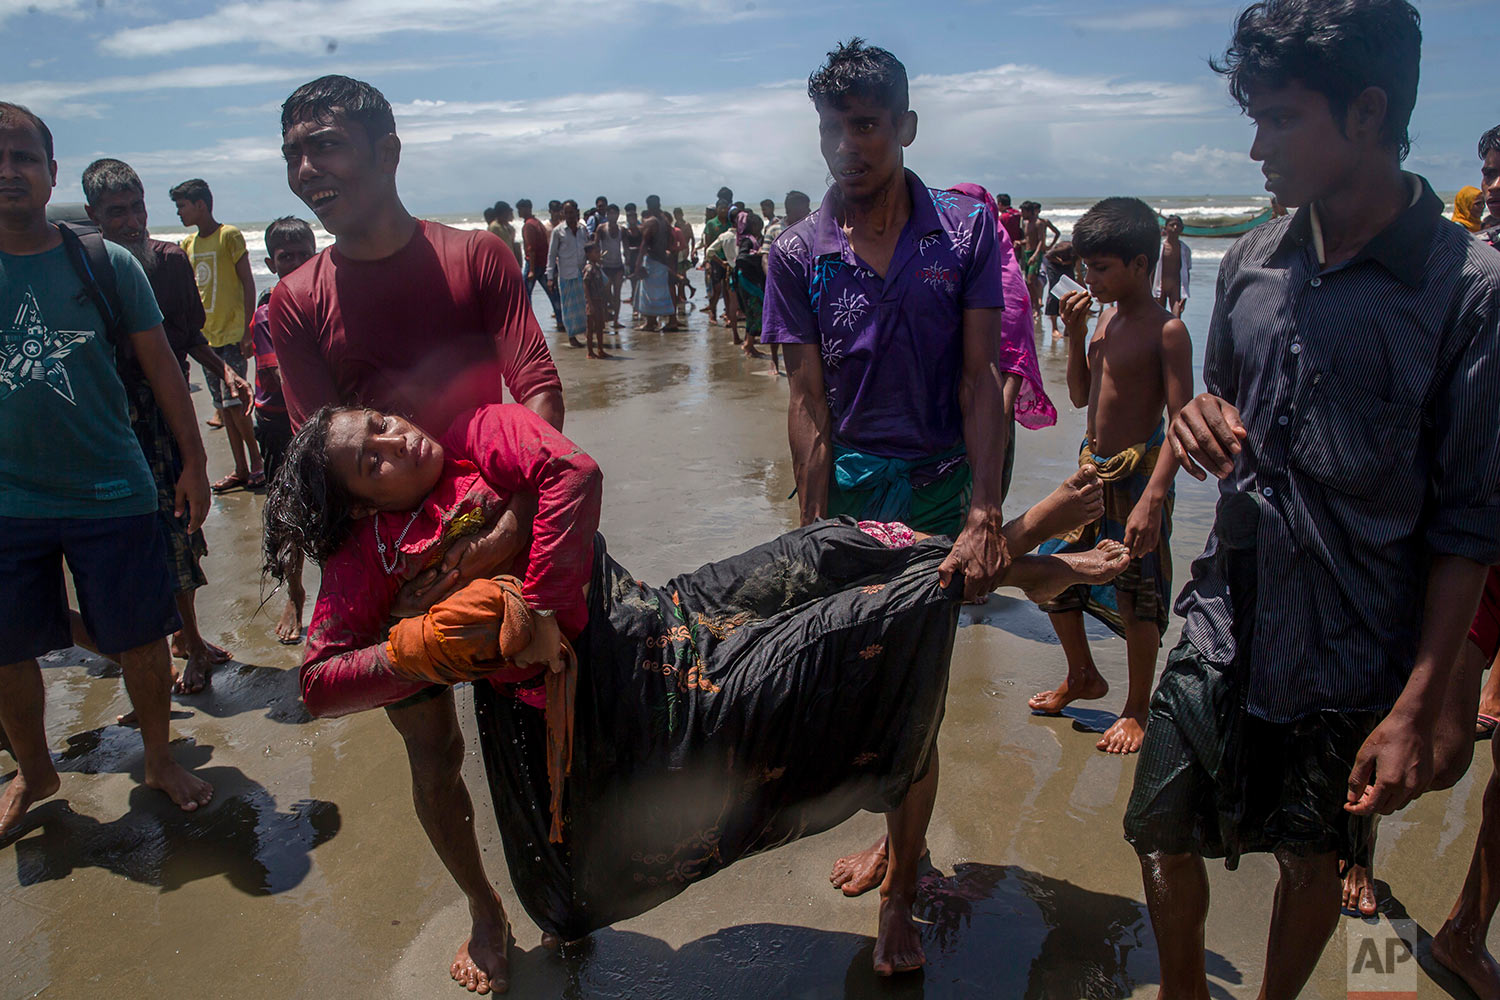 Relatives carry a Rohingya Muslim woman, who fell unconscious when the boat she was traveling in capsized minutes before reaching shore, towards a medical center for treatment at Shah Porir Dwip, Bangladesh, Thursday, Sept. 14, 2017. The woman survived. (AP Photo/Dar Yasin)